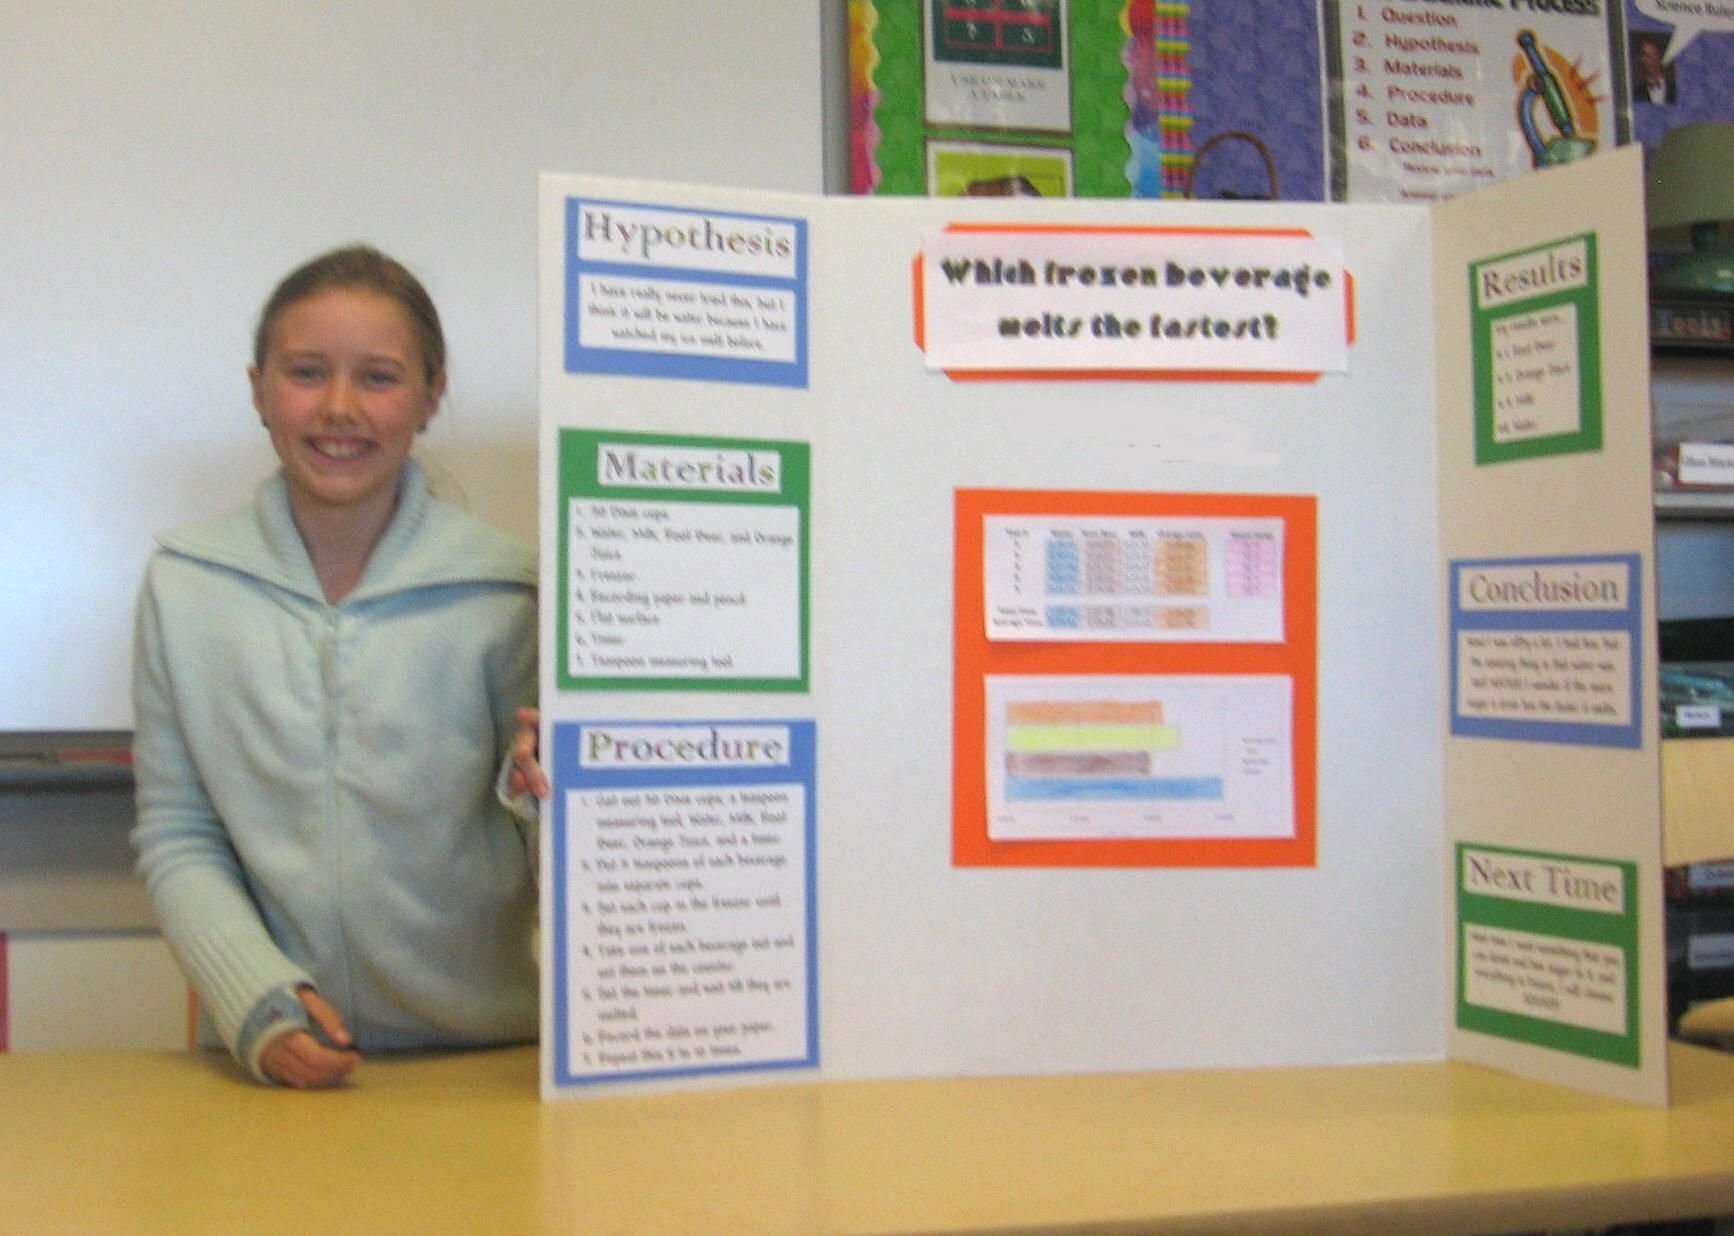 10 Stunning Science Fair Ideas For 4Th Grade great science fair project ideaswhich popsicle melts the fastest 15 2021